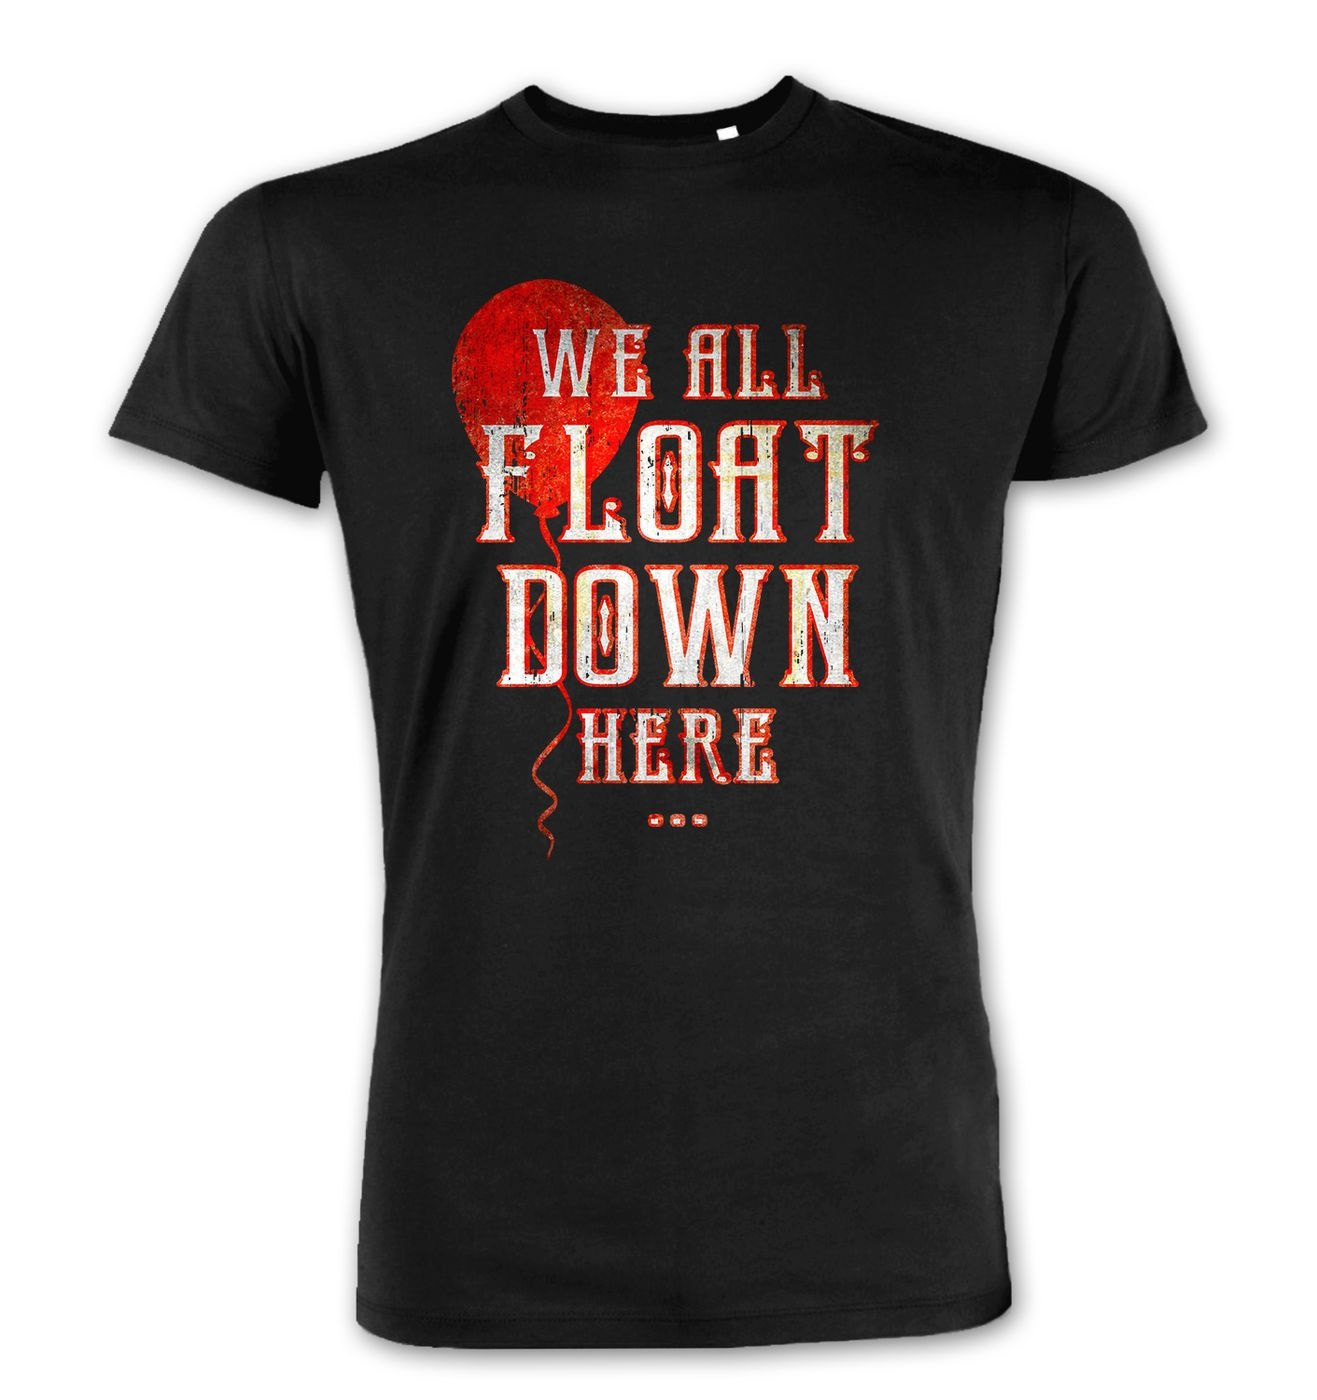 We All Float Down Here premium t-shirt by Something Geeky